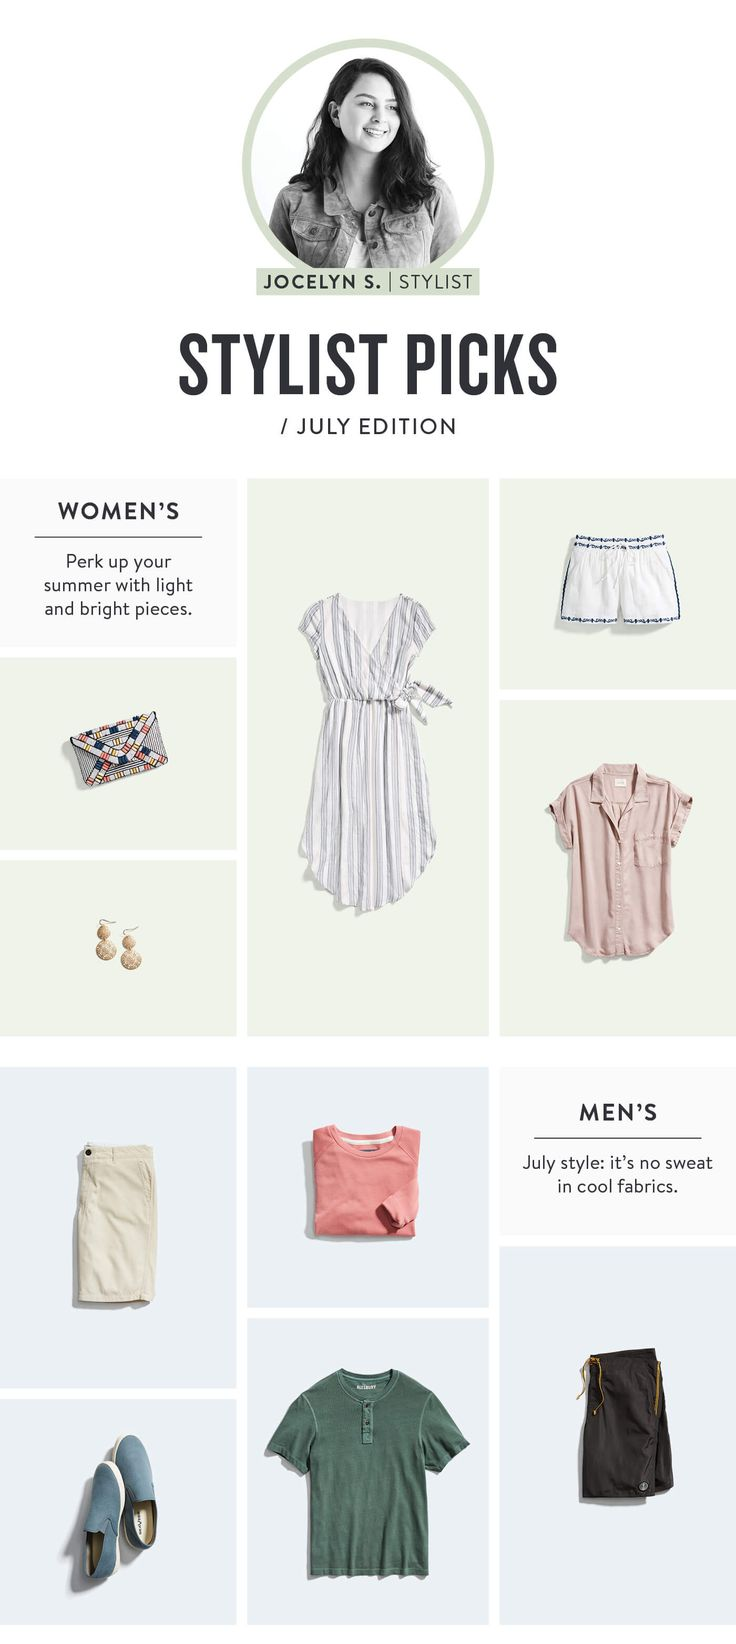 Stitch Fix Stylist Picks July  the dress is awesome! simple but flattering